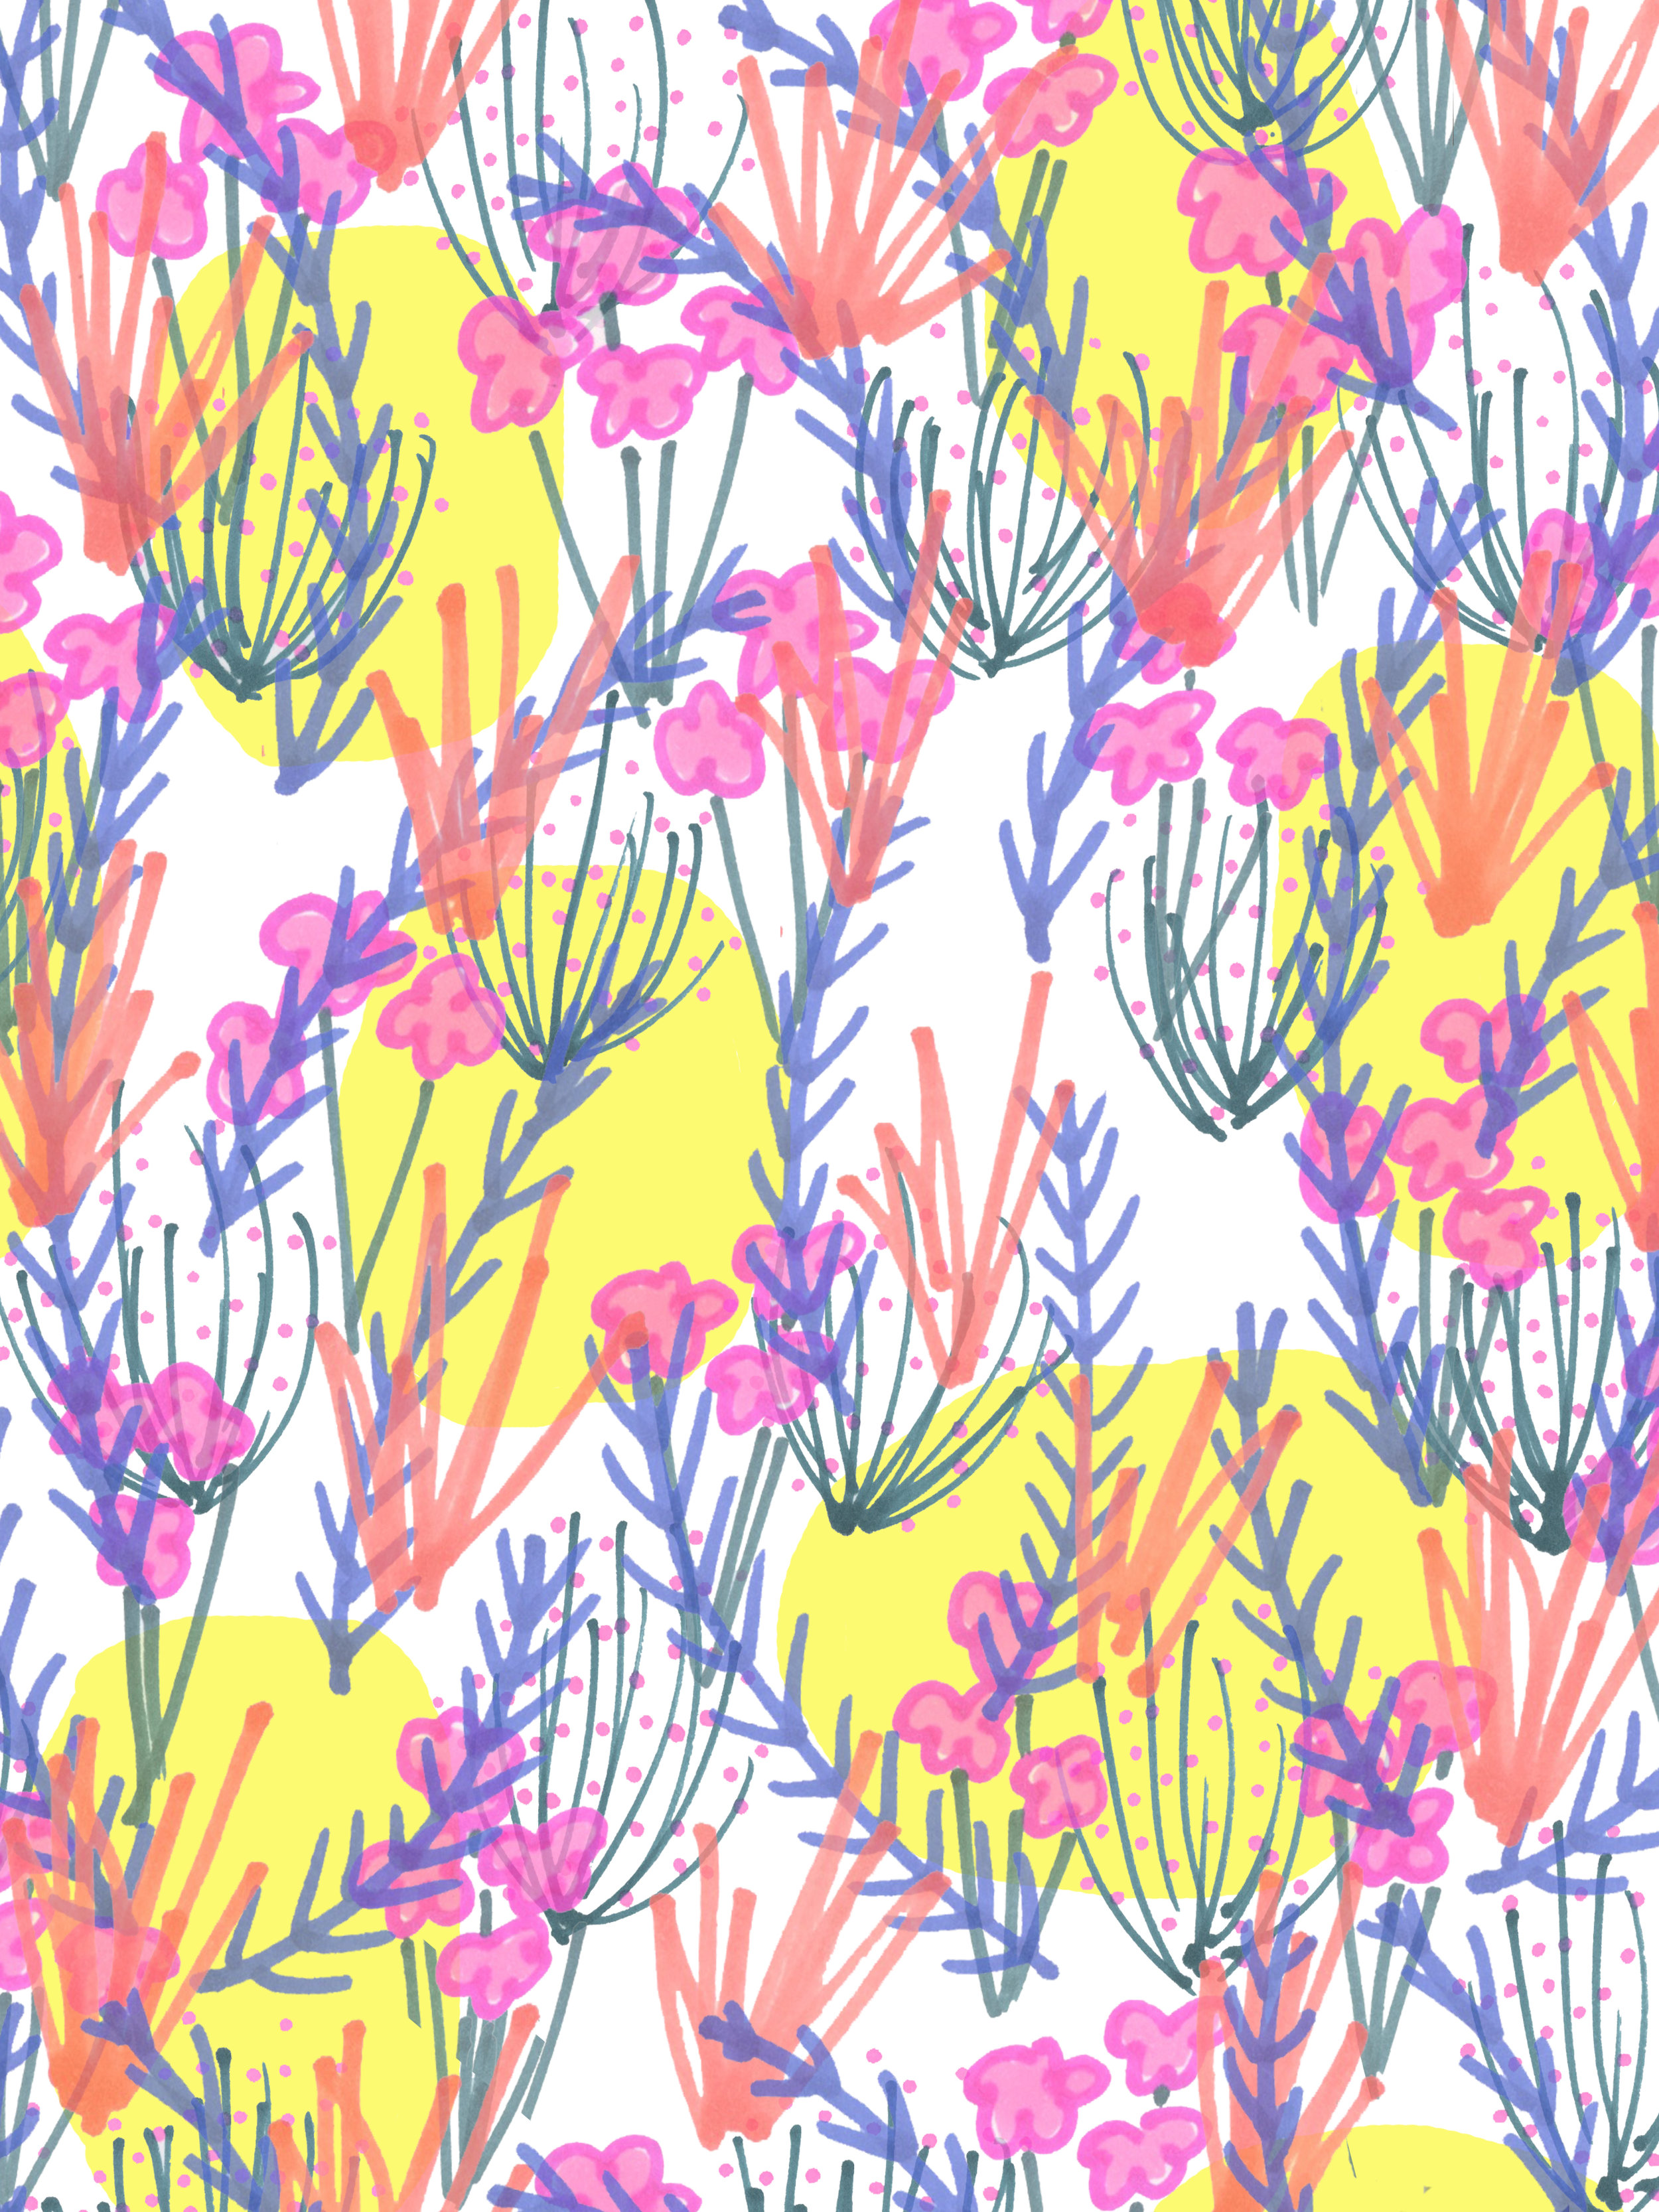 Markers Layered Floral Pattern.jpg